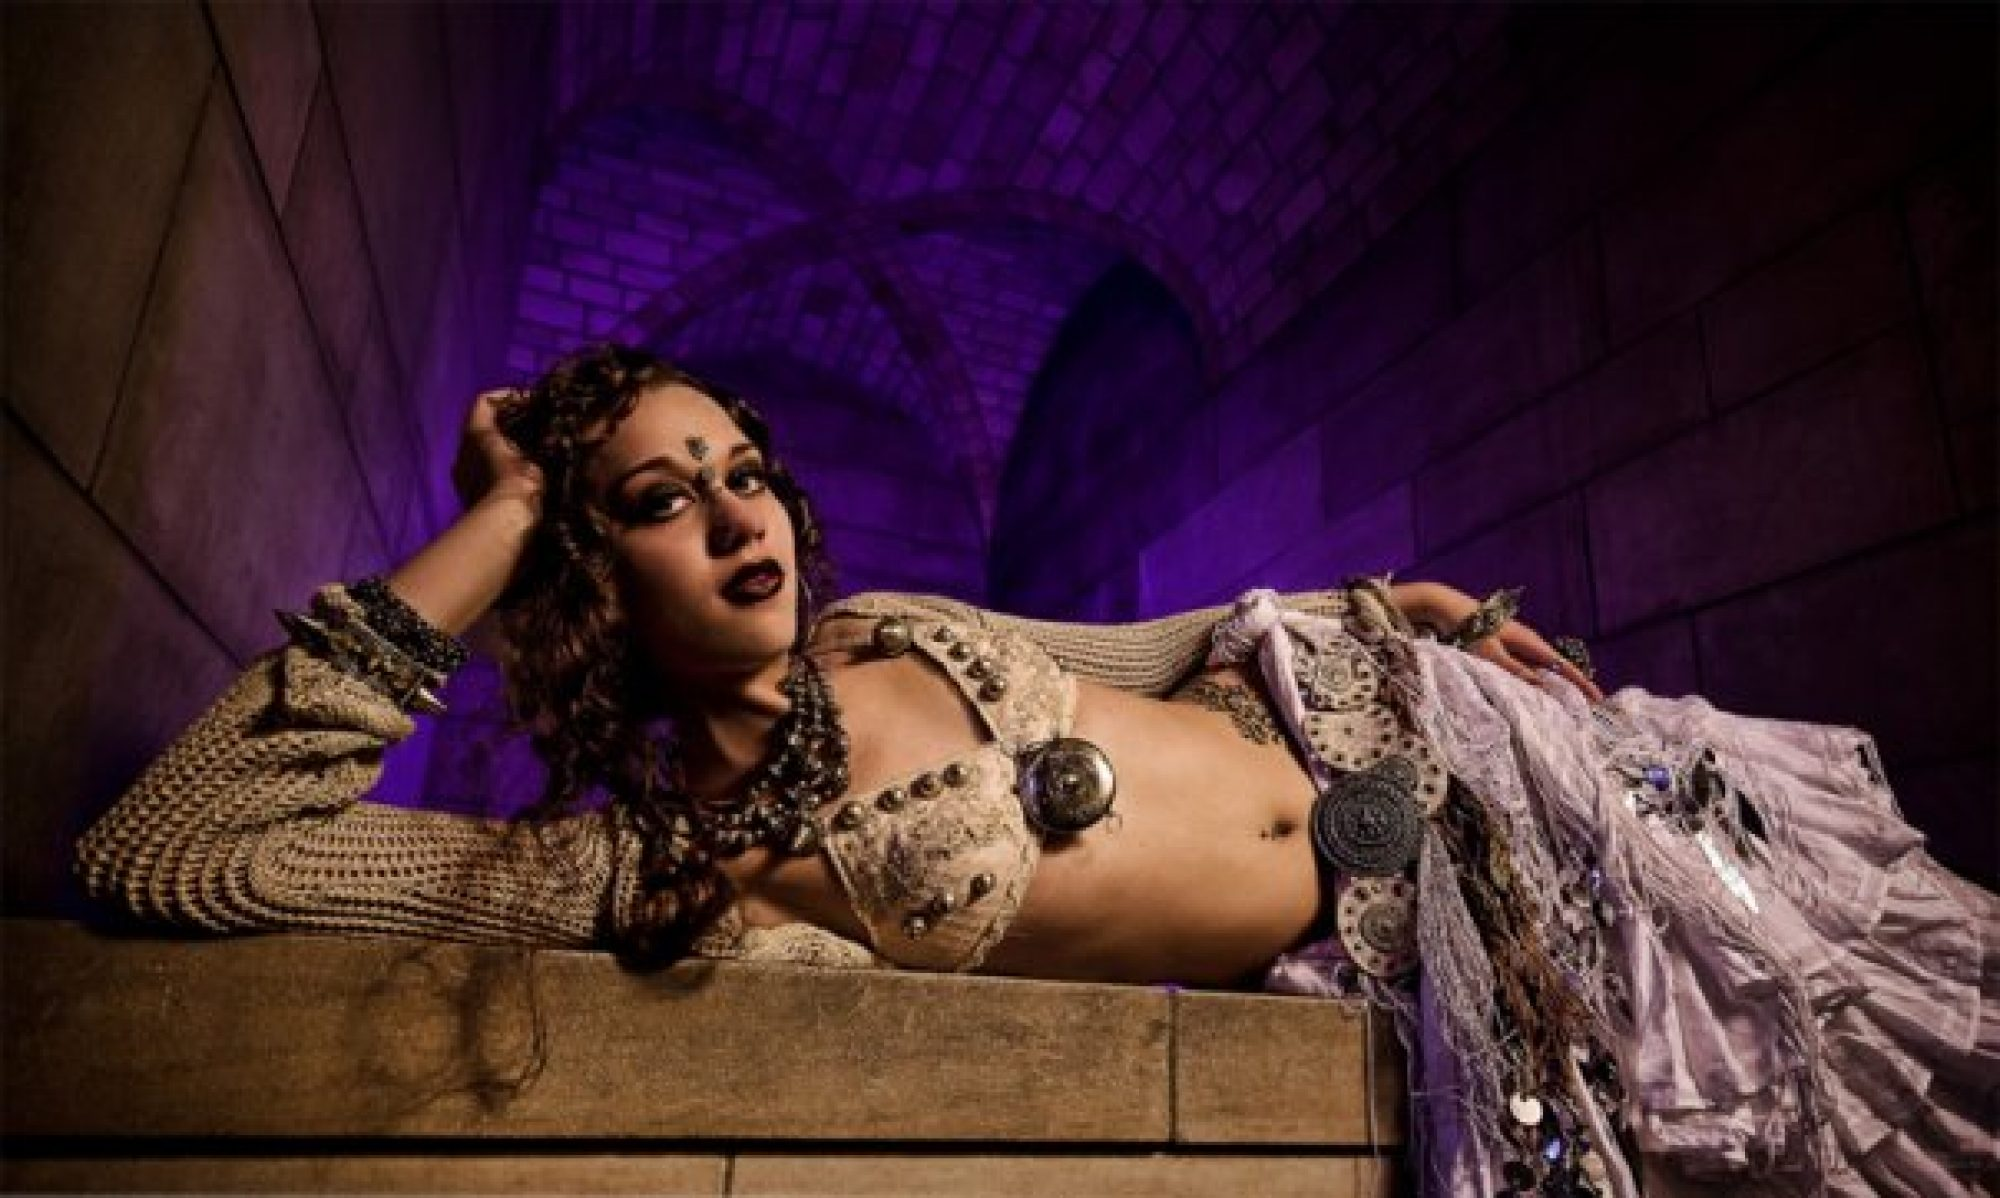 Morgan Fay Belly Dance